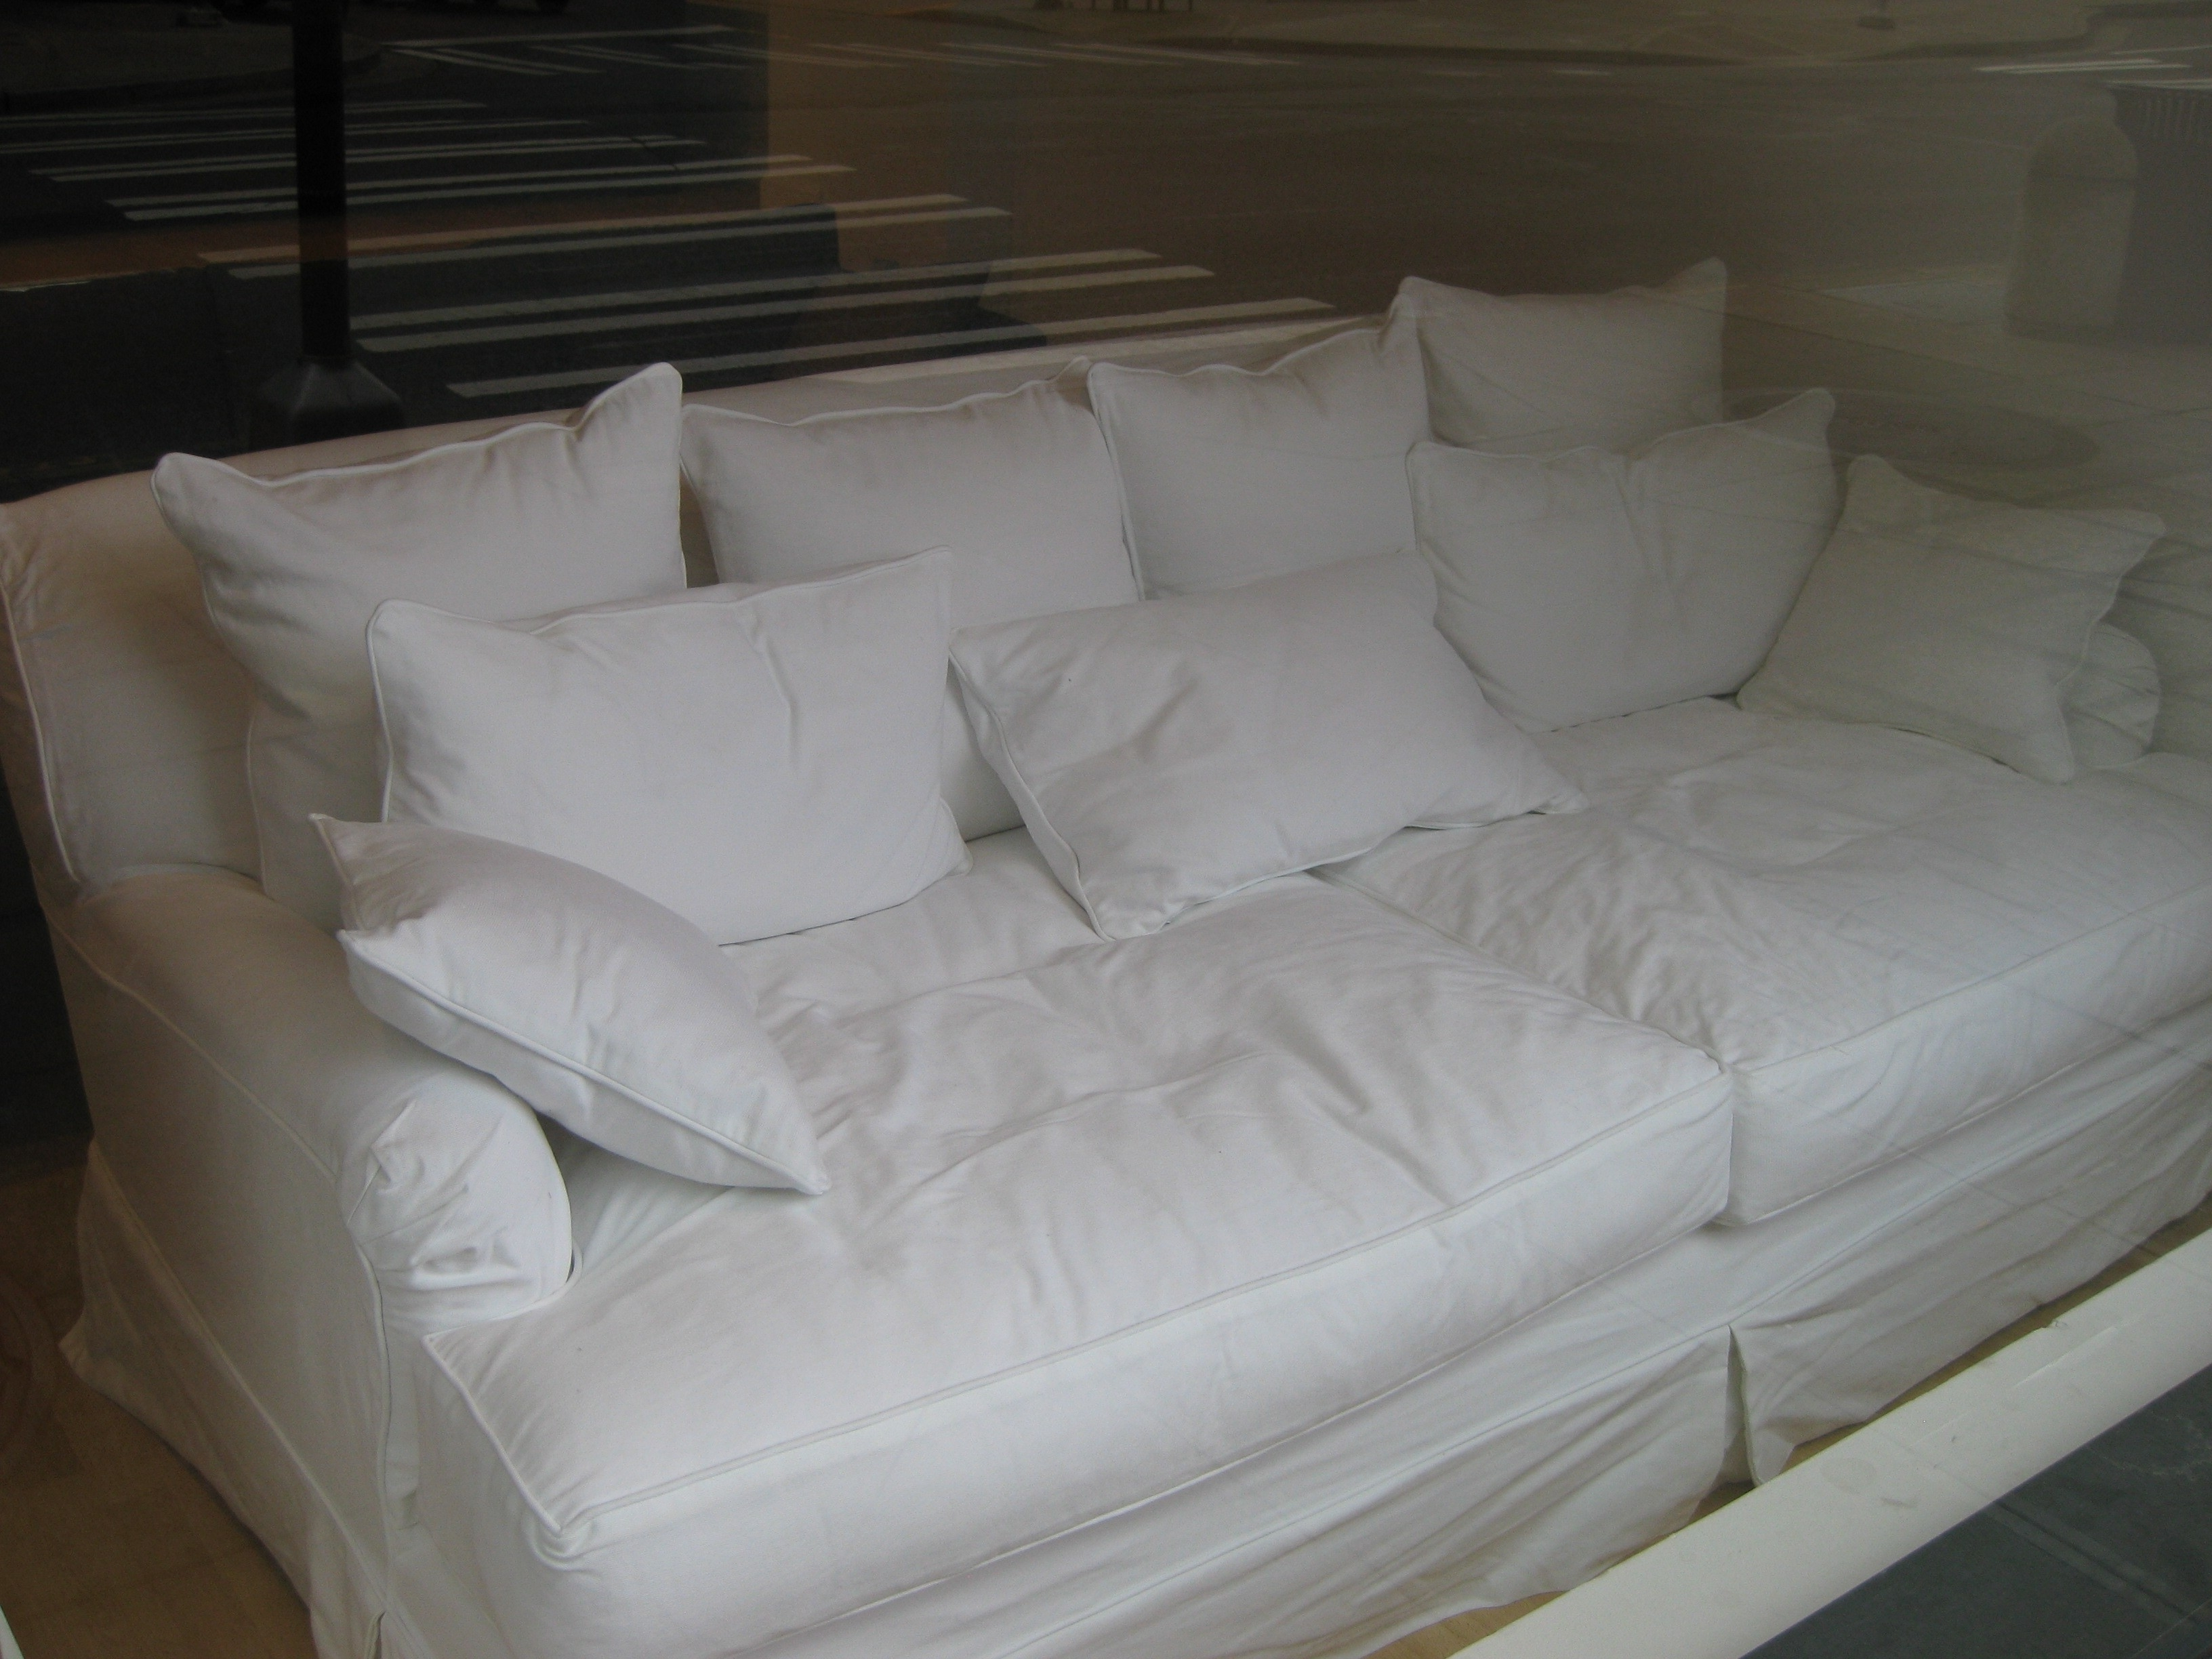 Favorite White Slipcovered Extra Deep Seated Loveseat Couch With Pillows Of Regarding Deep Cushion Sofas (View 20 of 20)